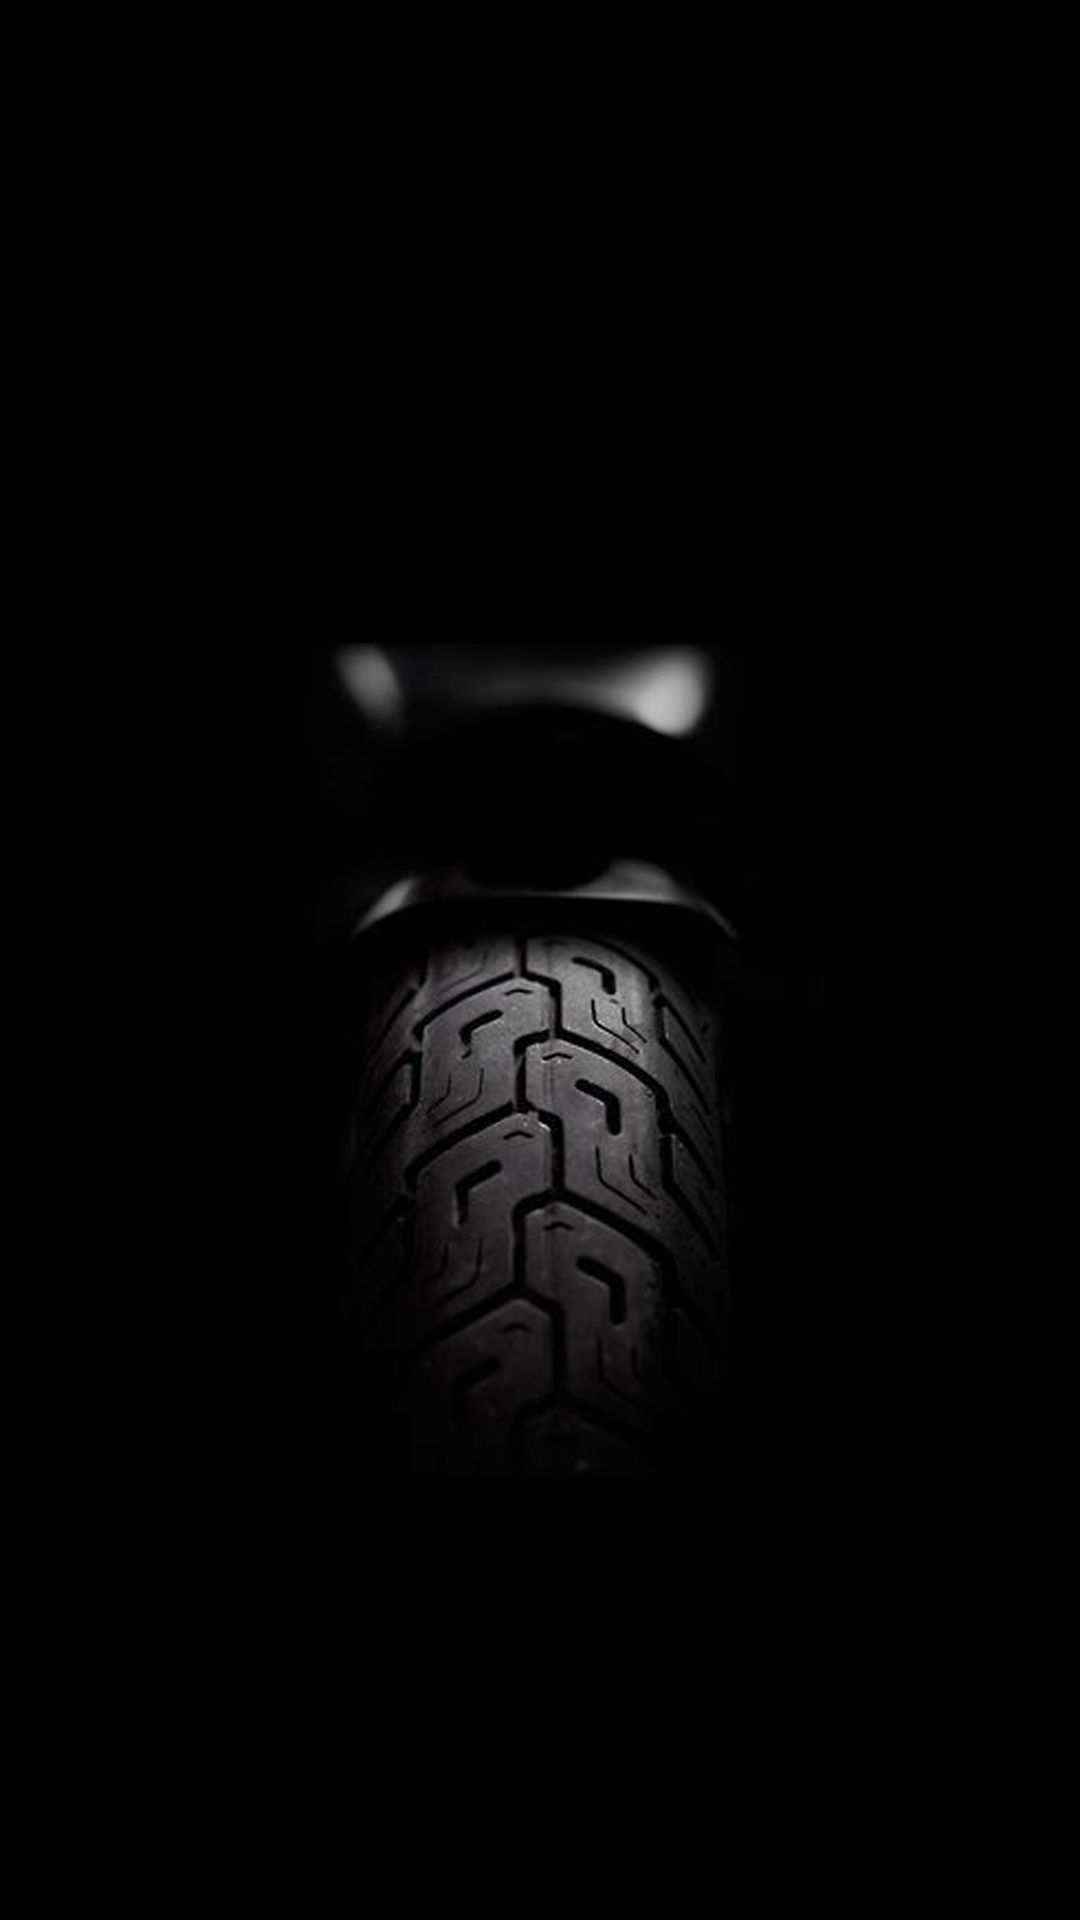 Motorcycle Iphone Wallpapers On Wallpaperdog